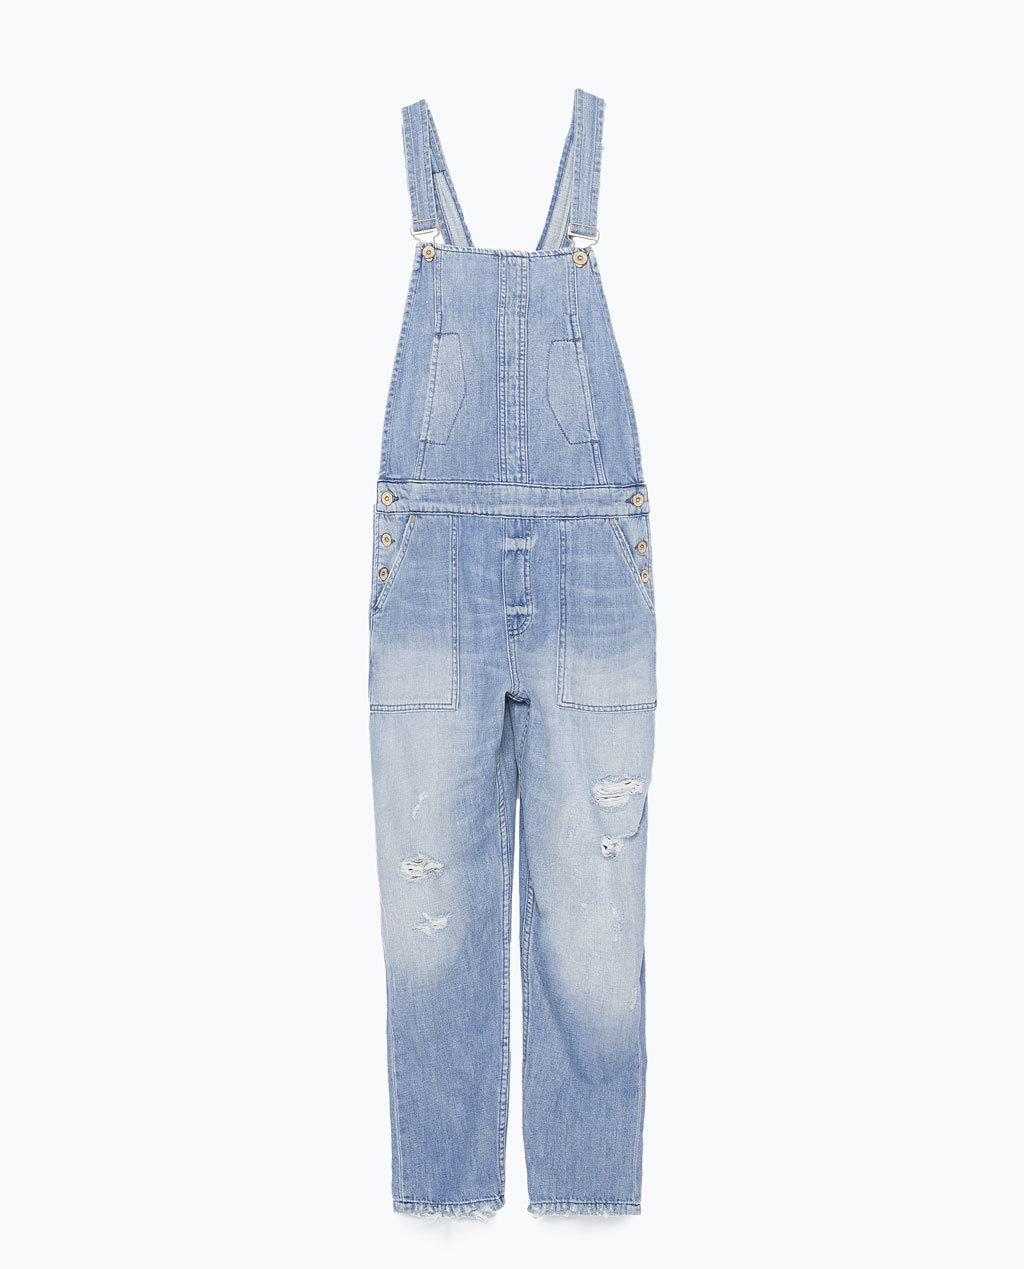 Denim Dungarees - length: standard; sleeve style: standard vest straps/shoulder straps; pattern: plain; back detail: back revealing; predominant colour: pale blue; occasions: casual; fit: straight cut; fibres: cotton - 100%; sleeve length: sleeveless; texture group: denim; style: dungarees; neckline: low square neck; pattern type: fabric; season: s/s 2015; wardrobe: highlight